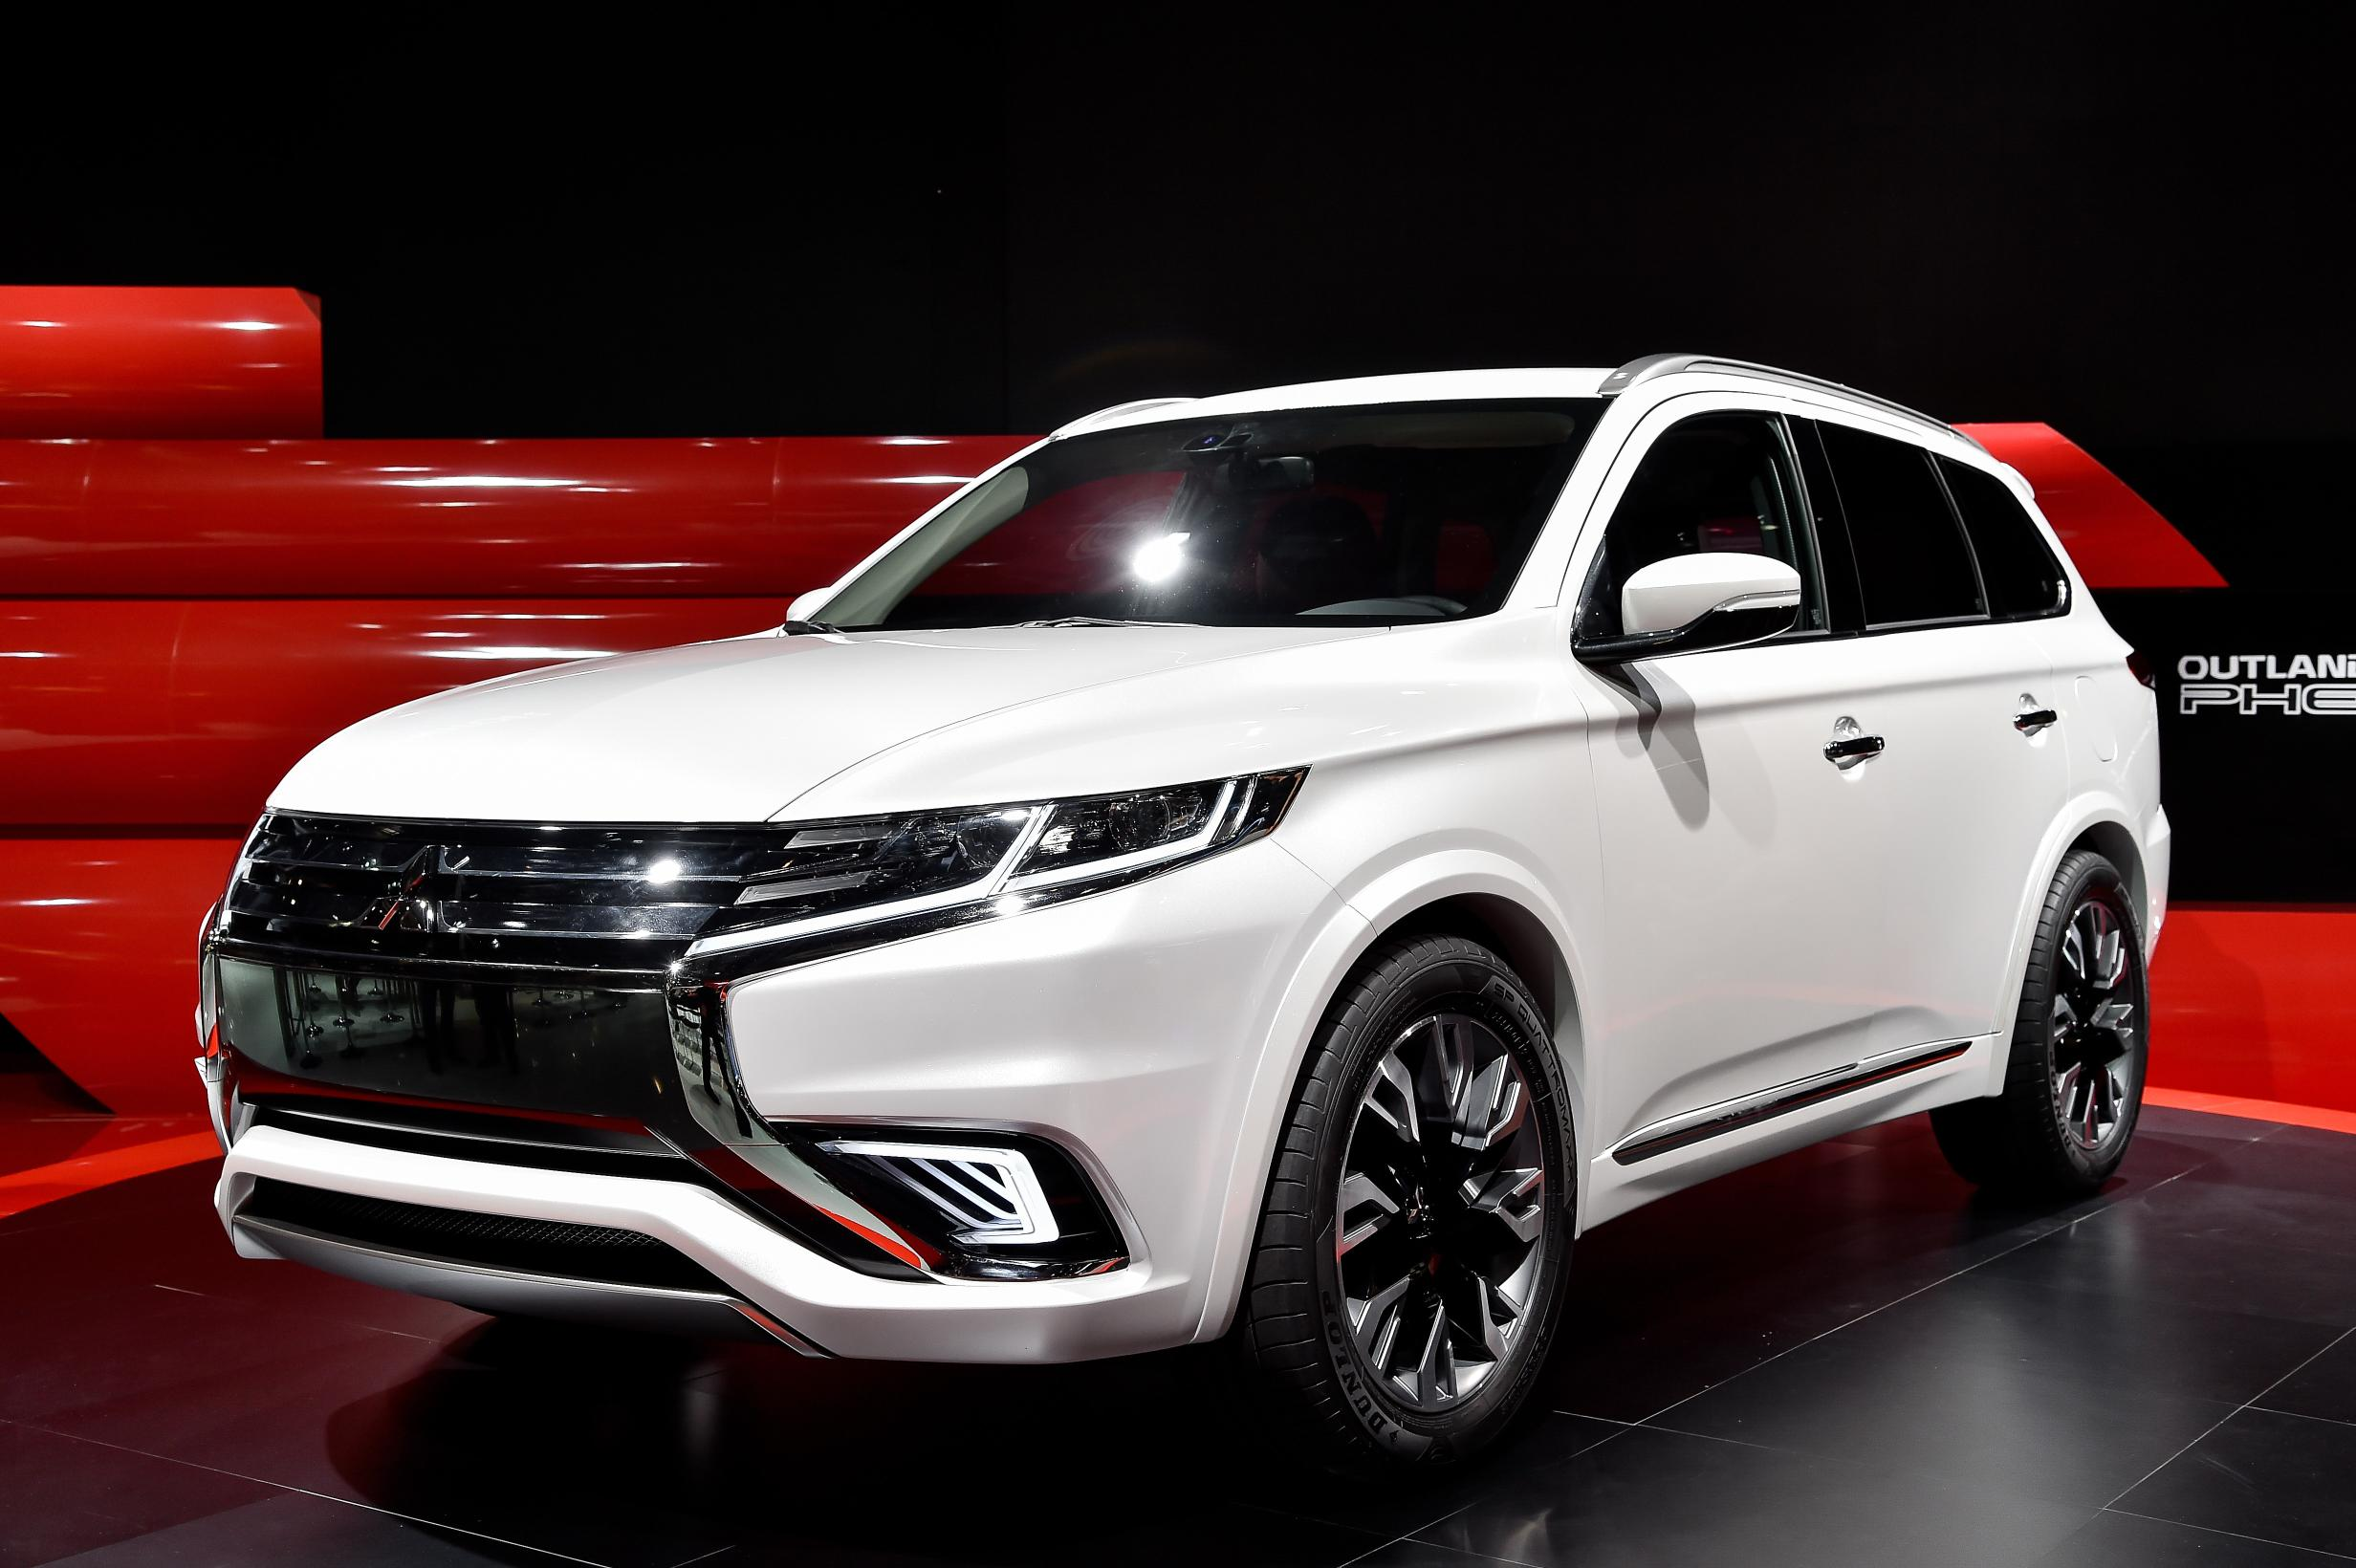 2016 mitsubishi outlander facelift spied ahead of new york auto show debut photo gallery. Black Bedroom Furniture Sets. Home Design Ideas